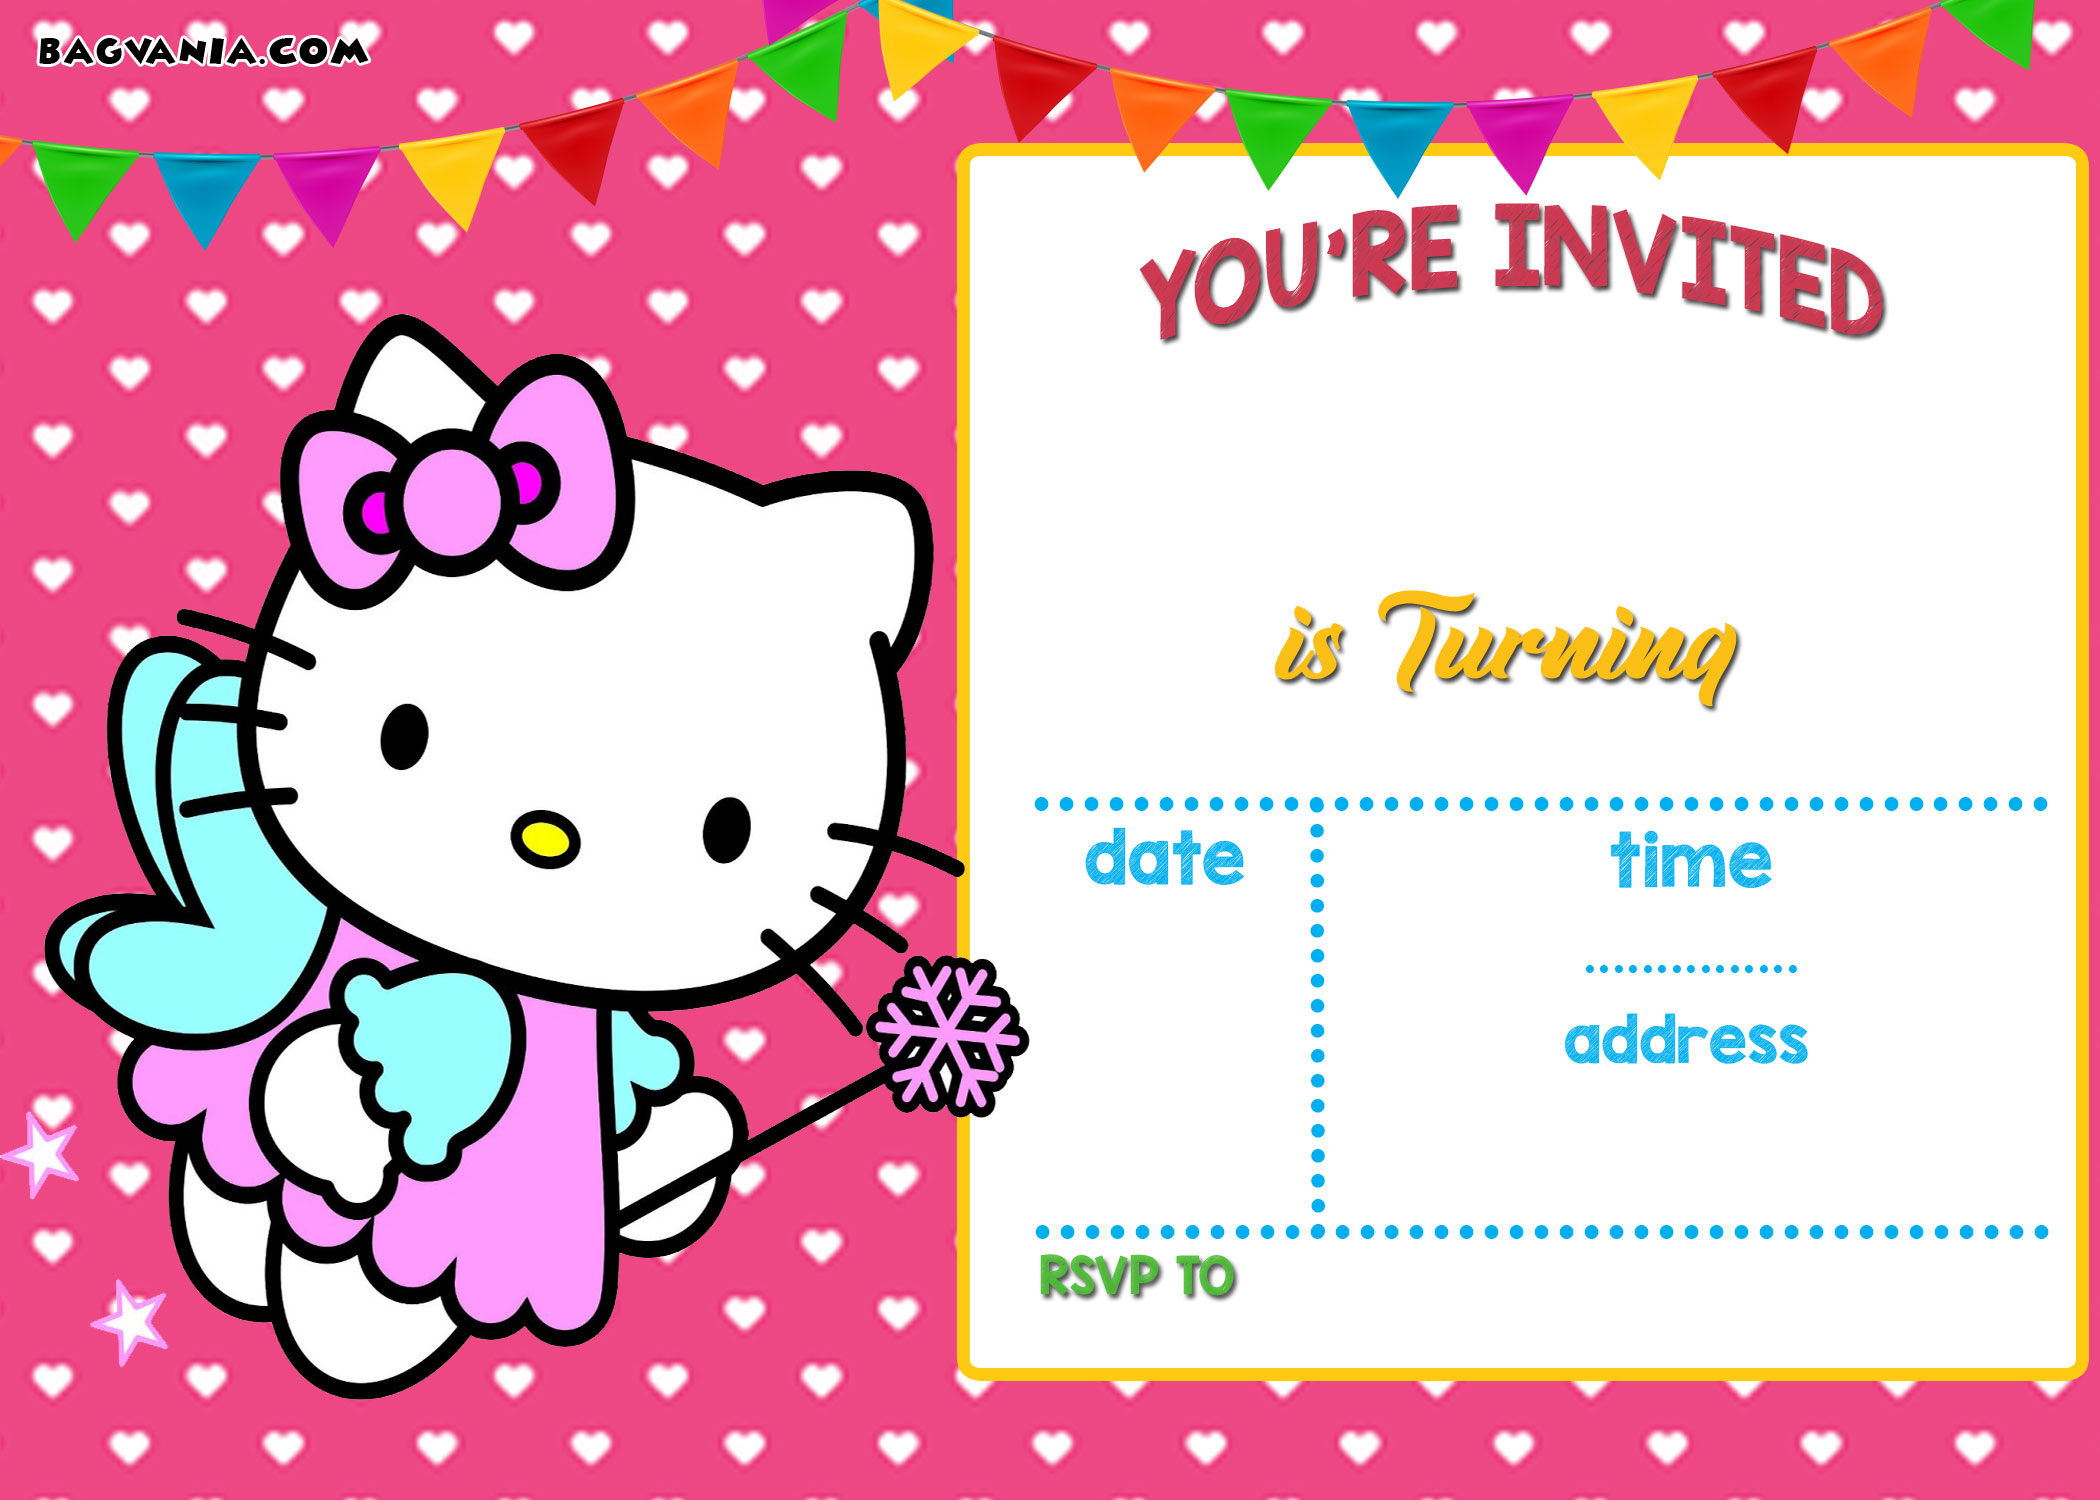 download birthday invitation card template ; birthday-invitation-card-templates-free-download-best-of-free-printable-hello-kitty-invitation-templates-theme-of-birthday-invitation-card-templates-free-download